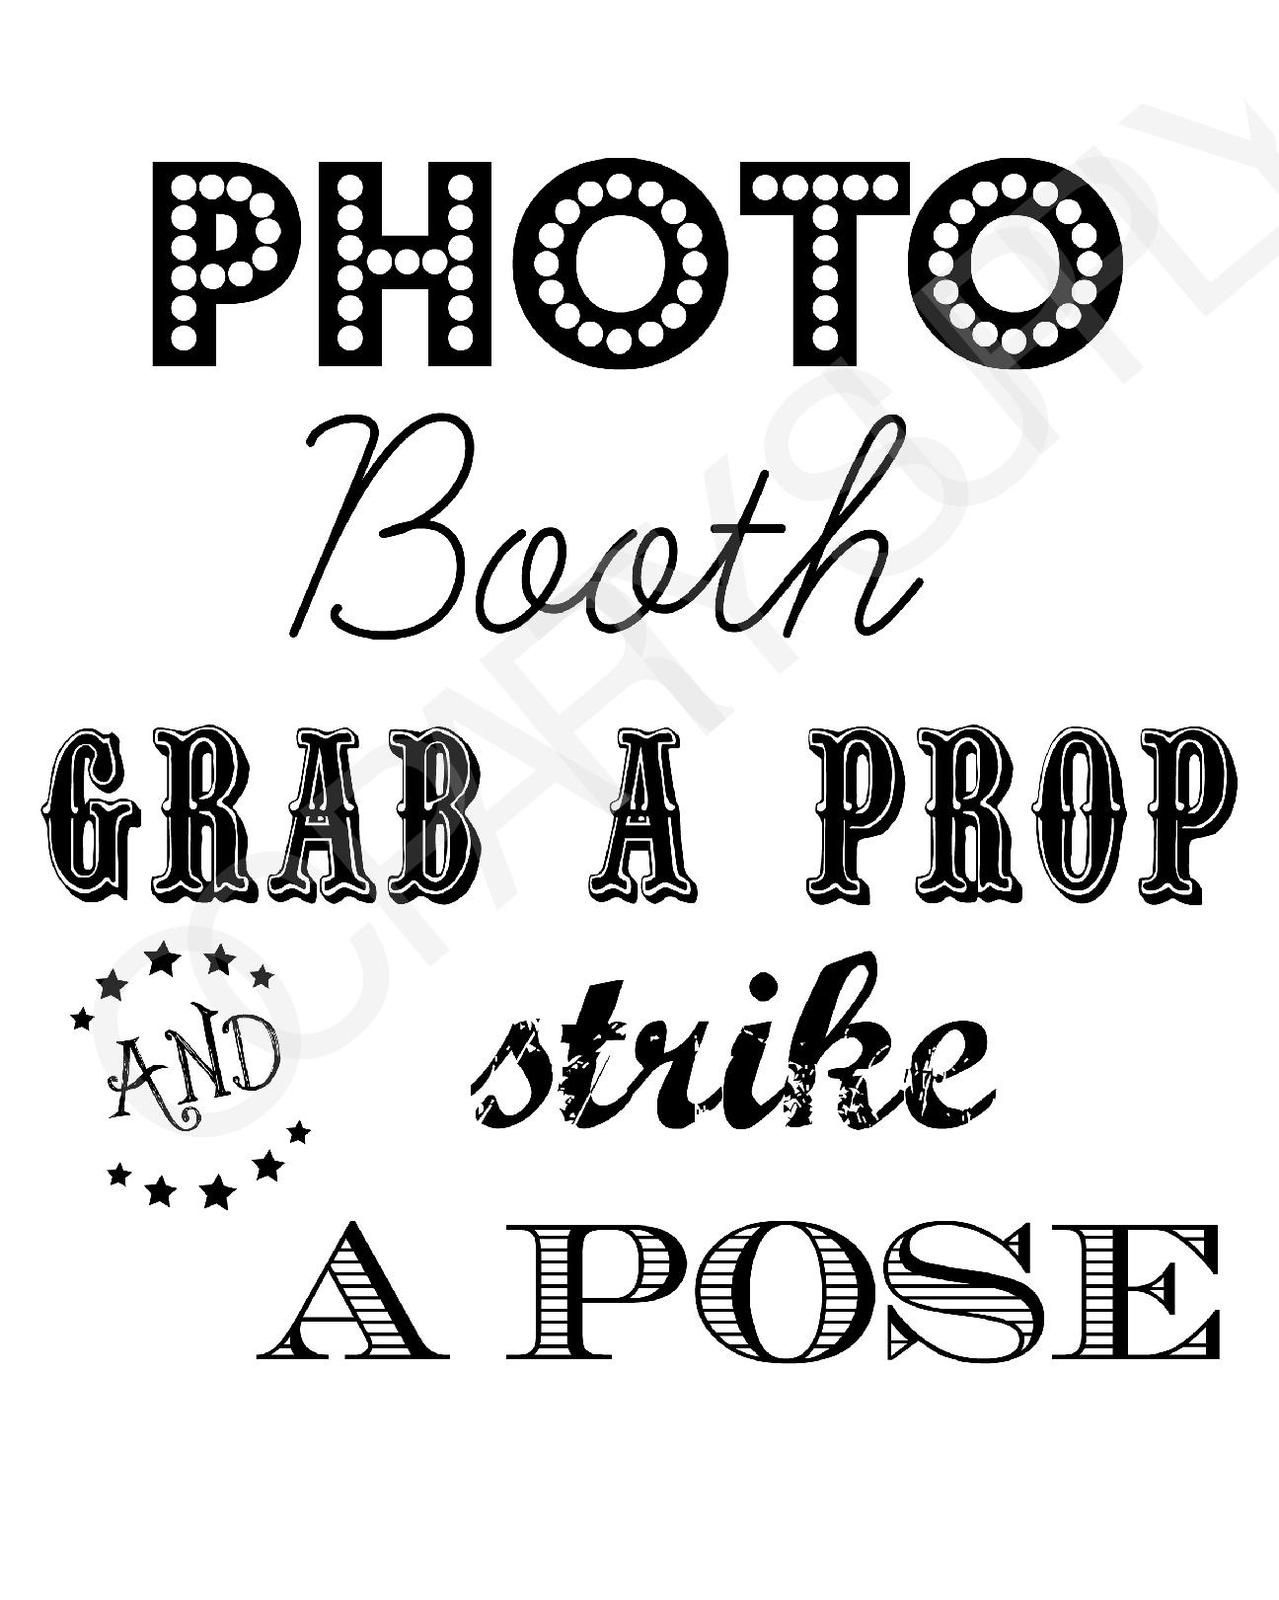 Free Photo Booth Sign (Printable) | Photo Props - Selfie Station Free Printable